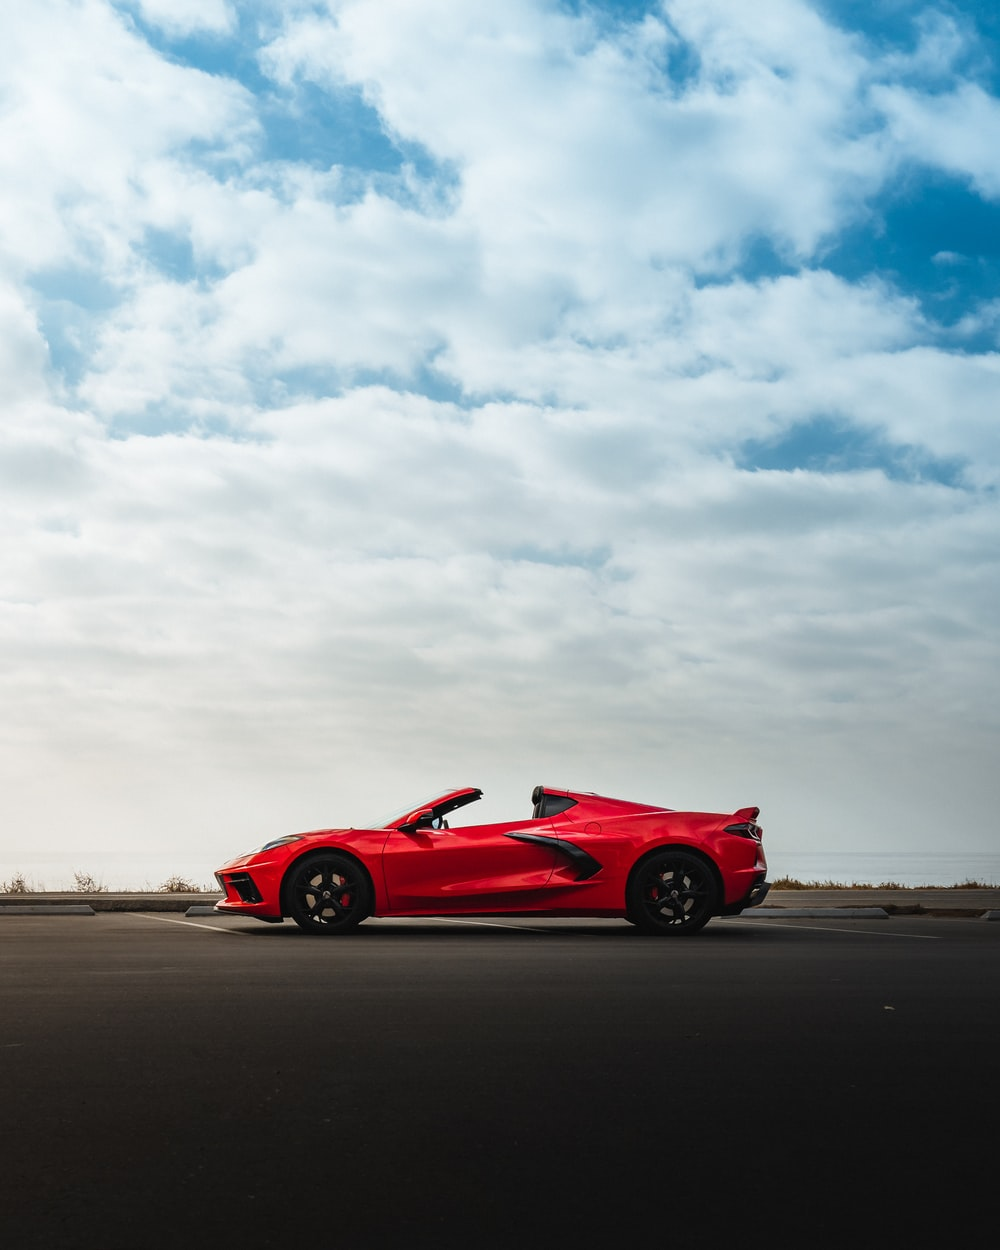 red ferrari 458 italia on brown sand under white clouds during daytime